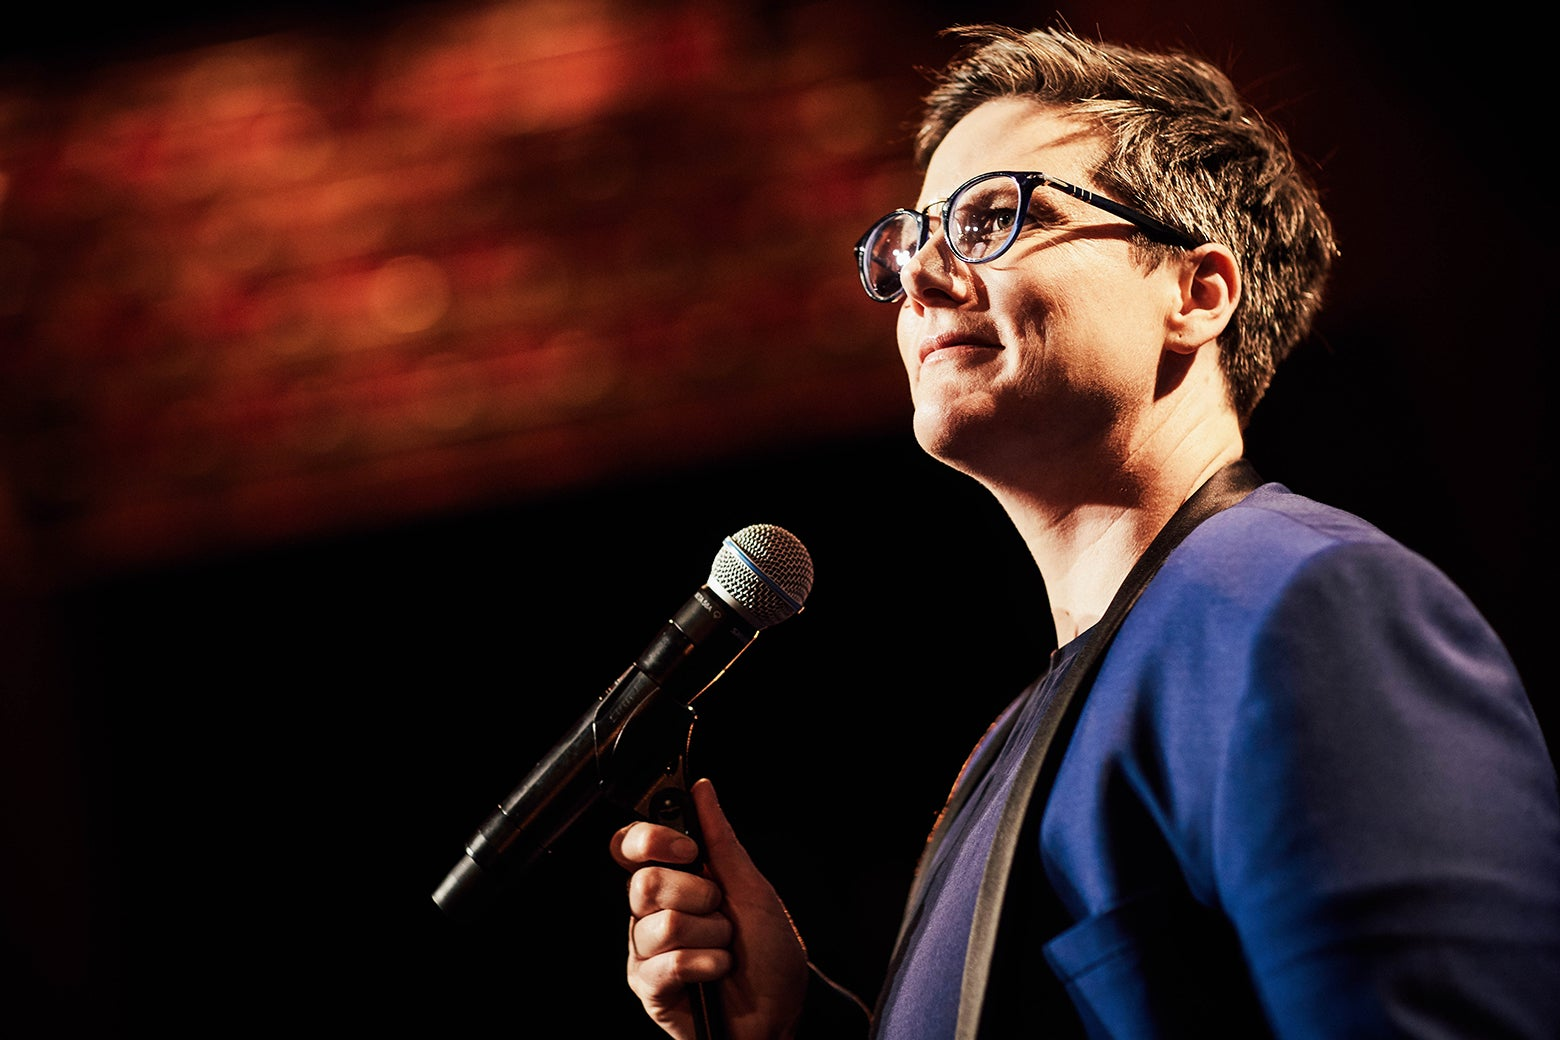 Hannah Gadsby stands, mic in hand, during a stand-up show.